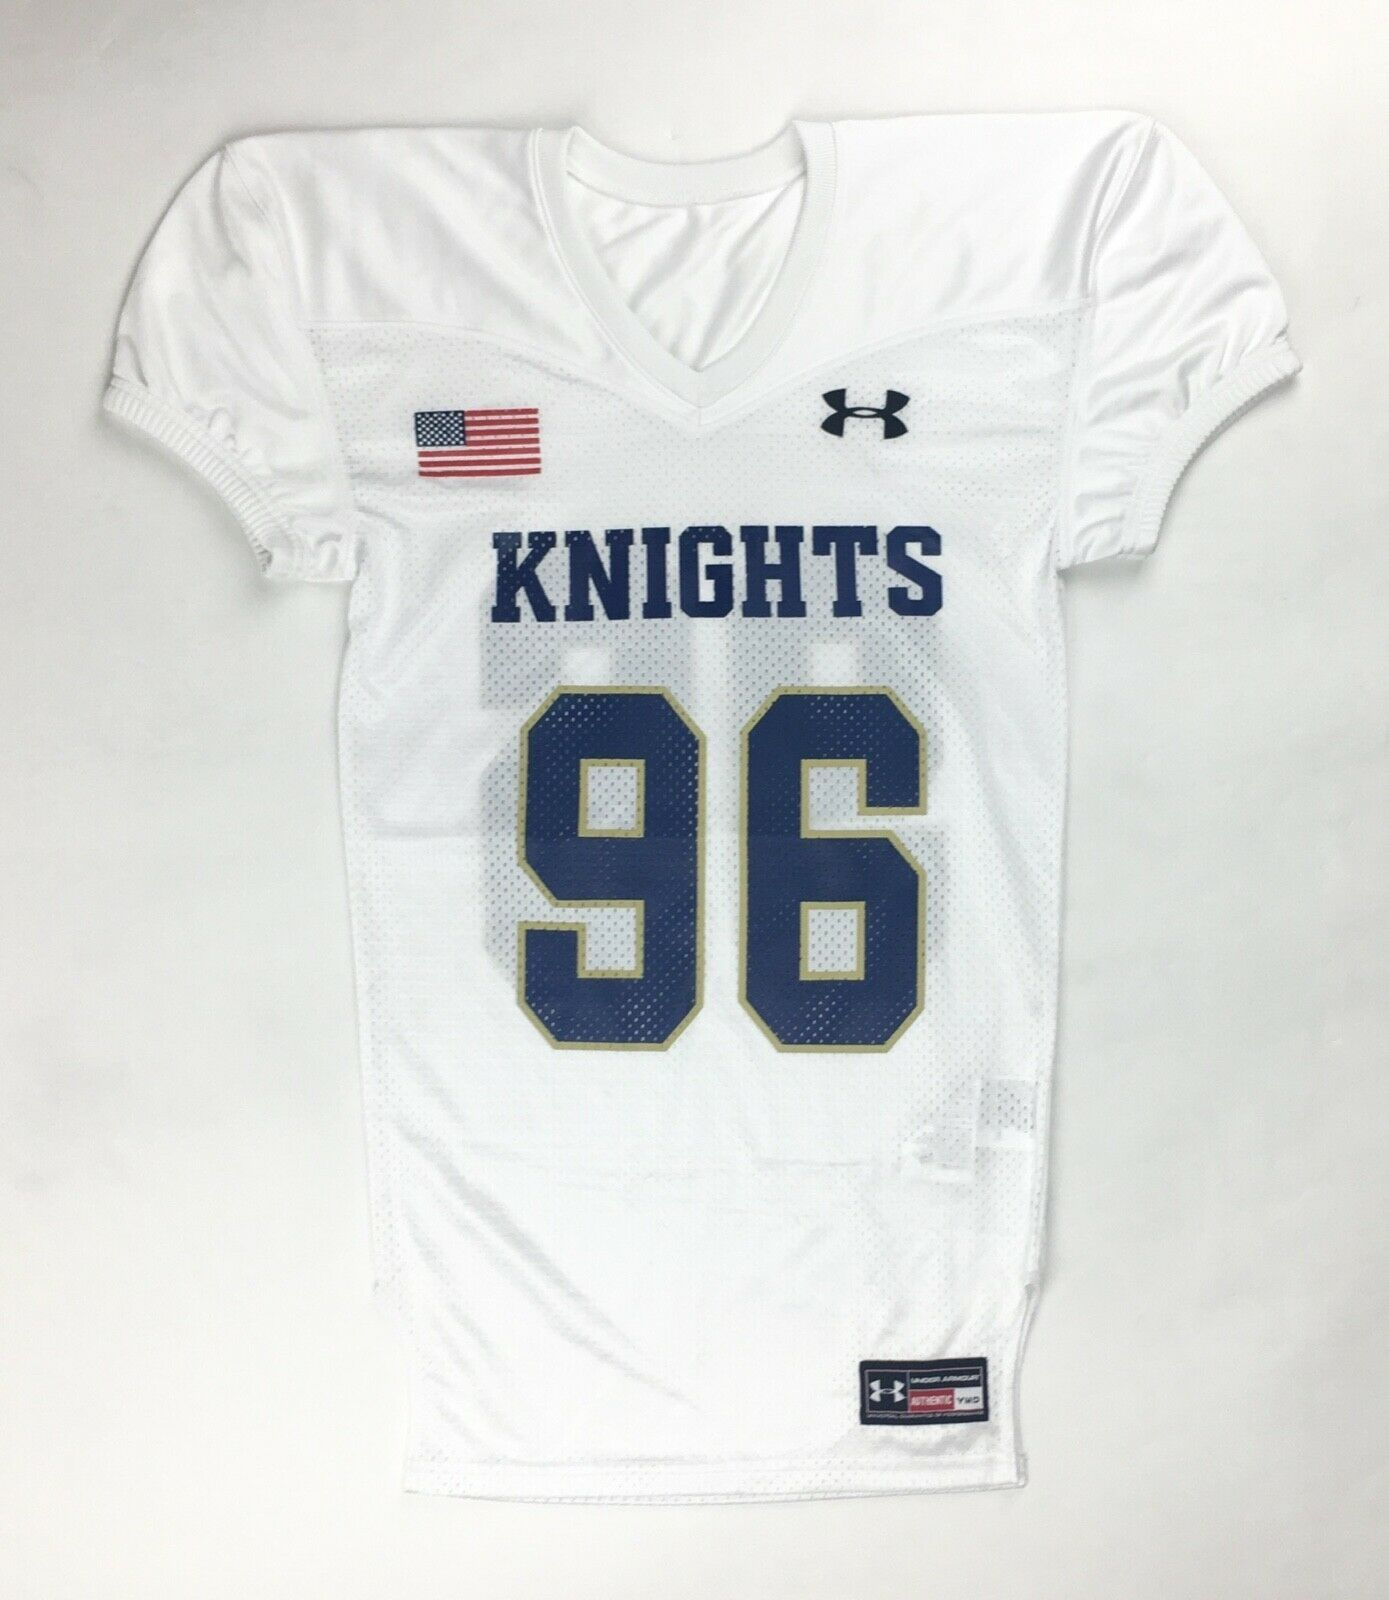 Primary image for New Under Armour Knights Performance Football Jersey #96 Youth M White 1241721